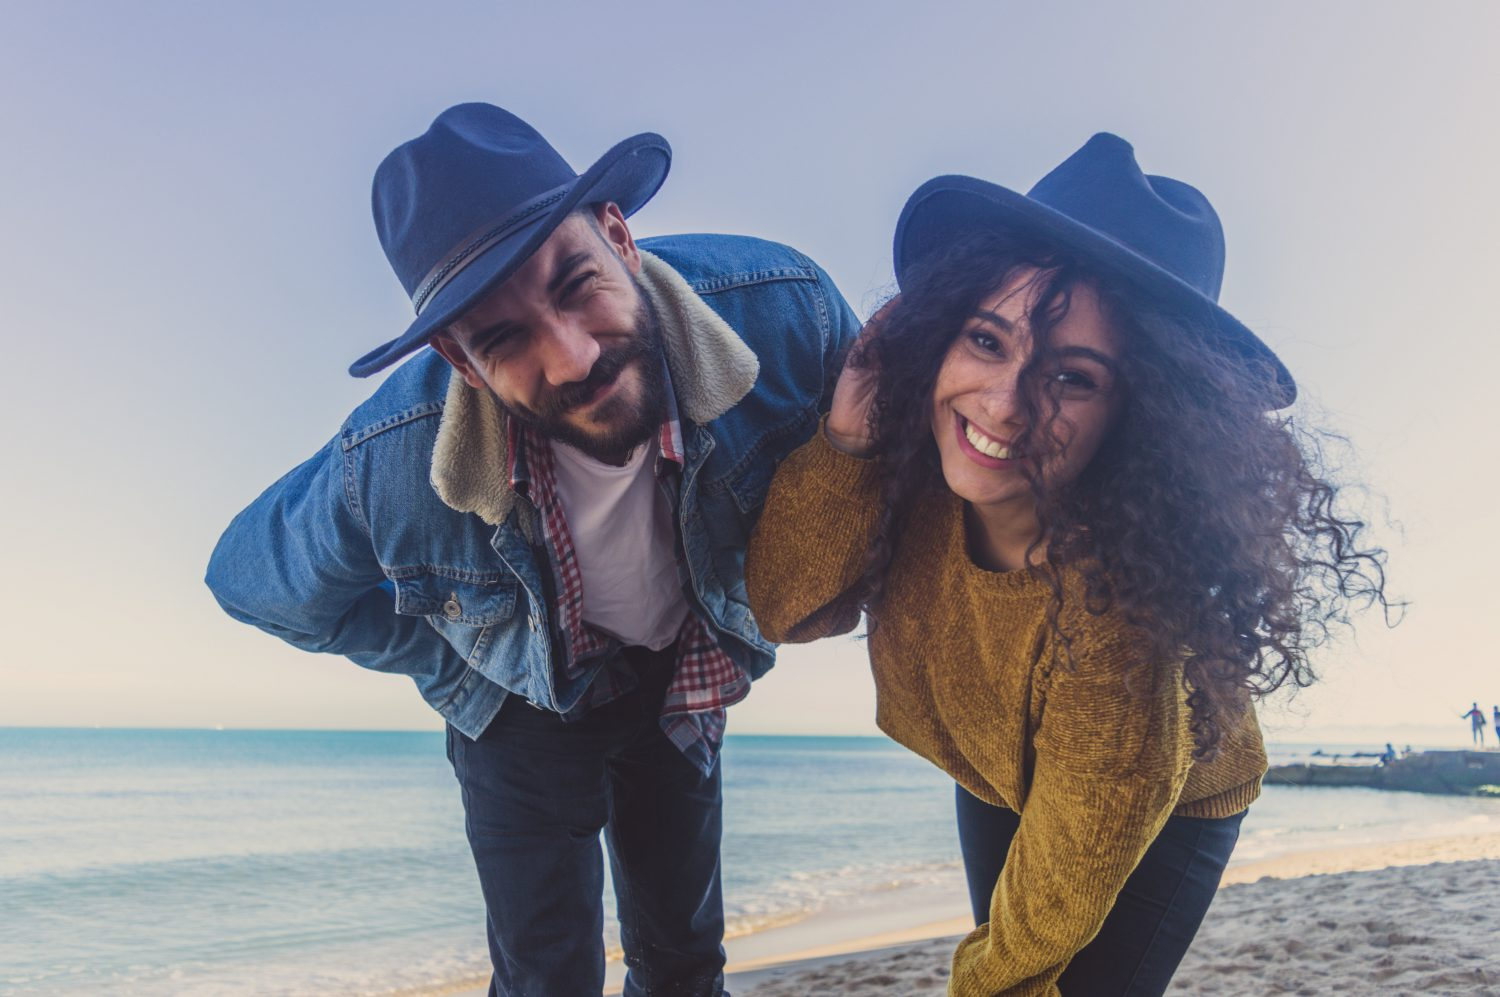 5 Useful Tips To Make Your Love Last Forever